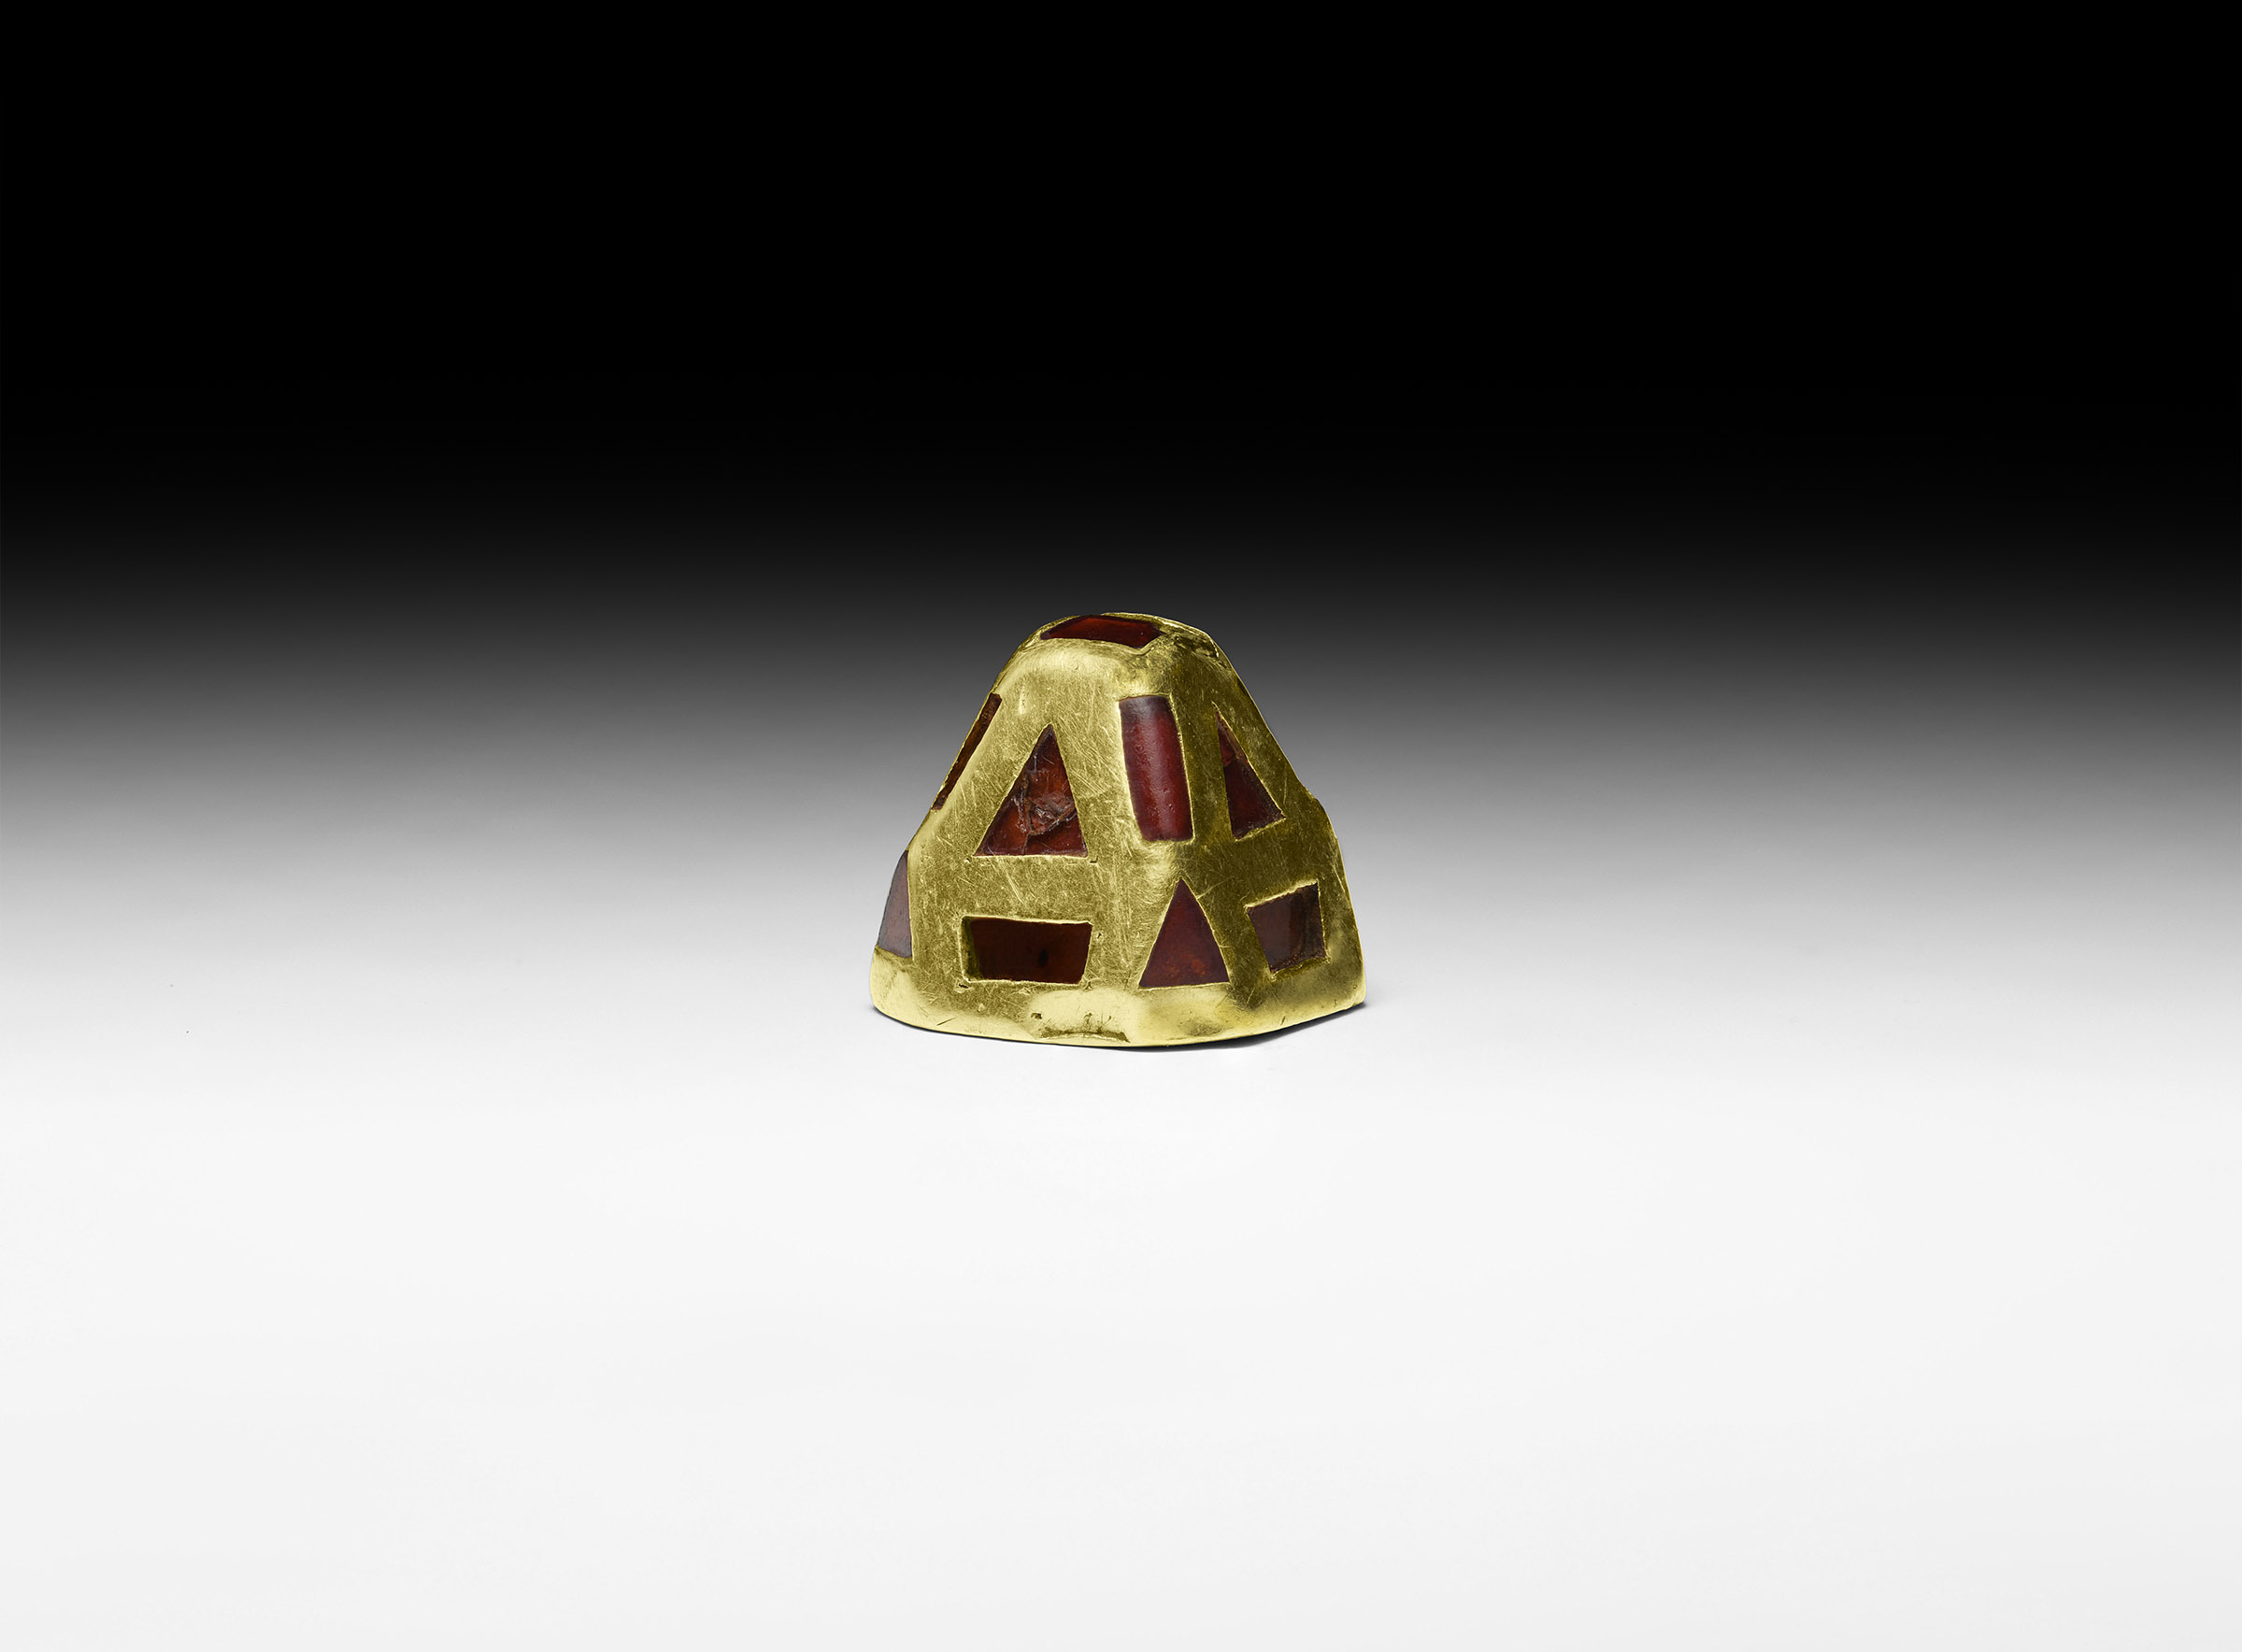 Anglo-Saxon The Thwaite Gold and Garnet Sword Pyramid